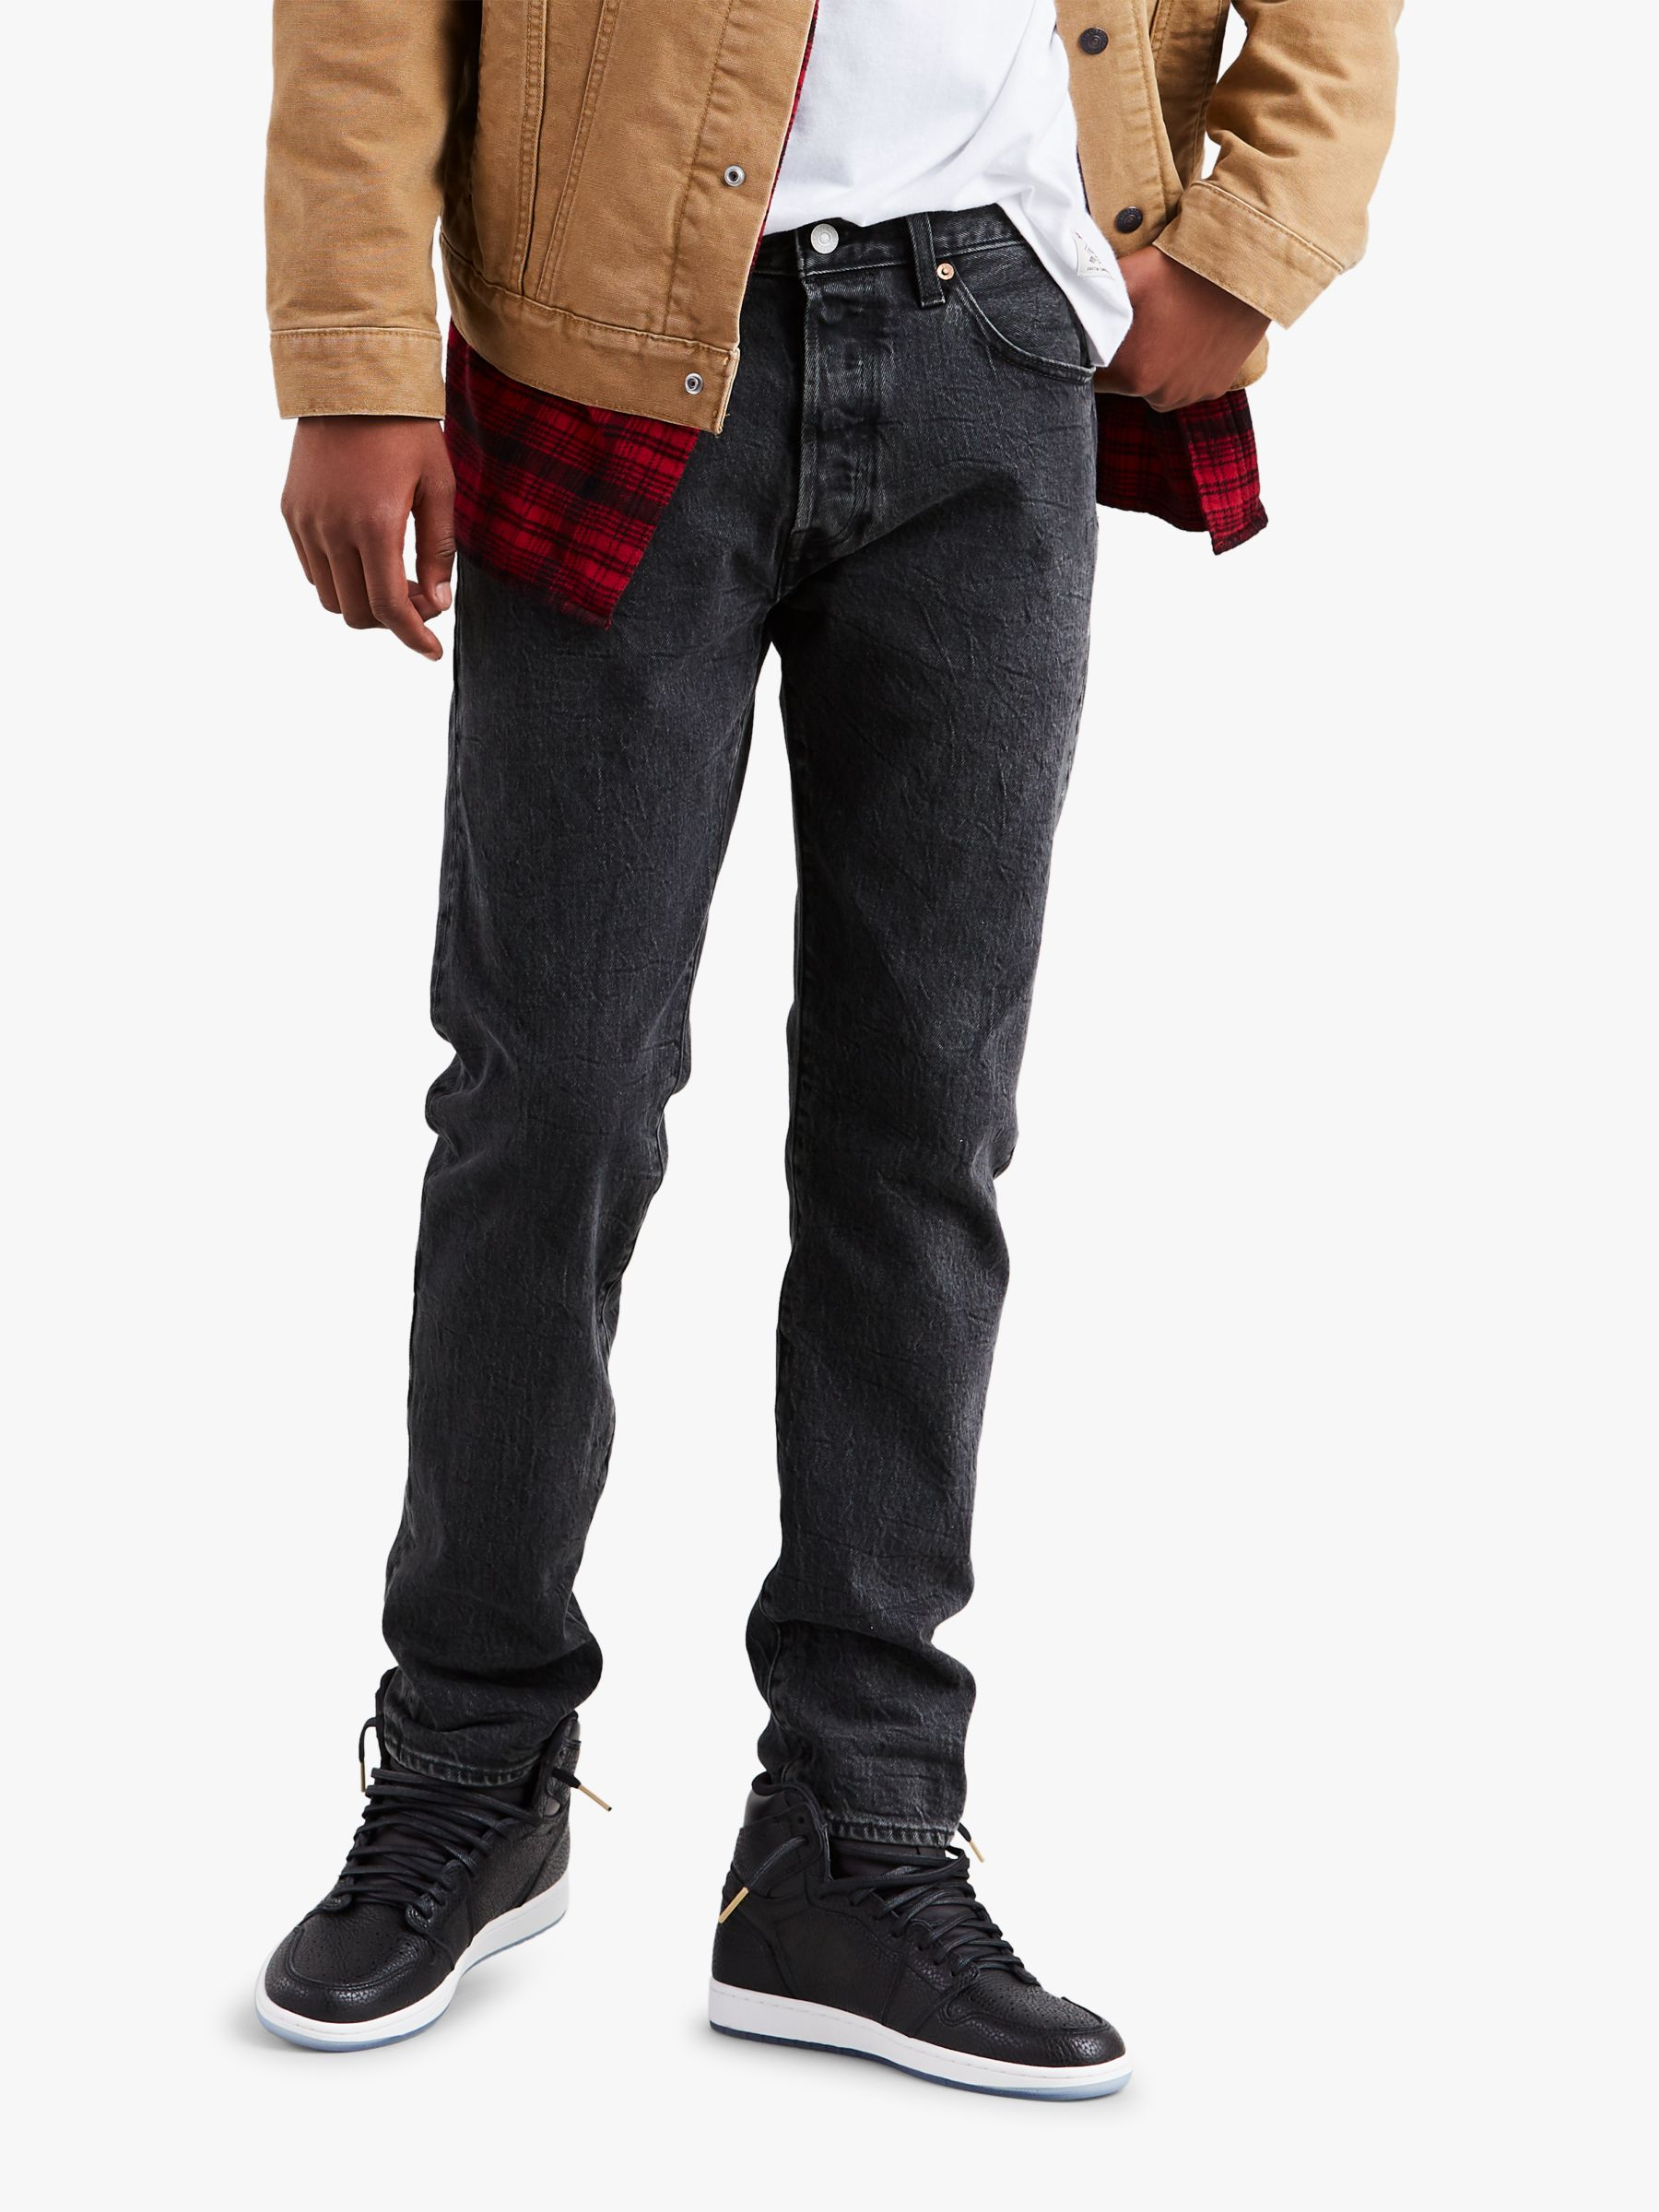 6f6a6eb0ad6 Levi's x Justin Timberlake 501 Slim Tapered Fit Jeans, Washed Black at John  Lewis & Partners